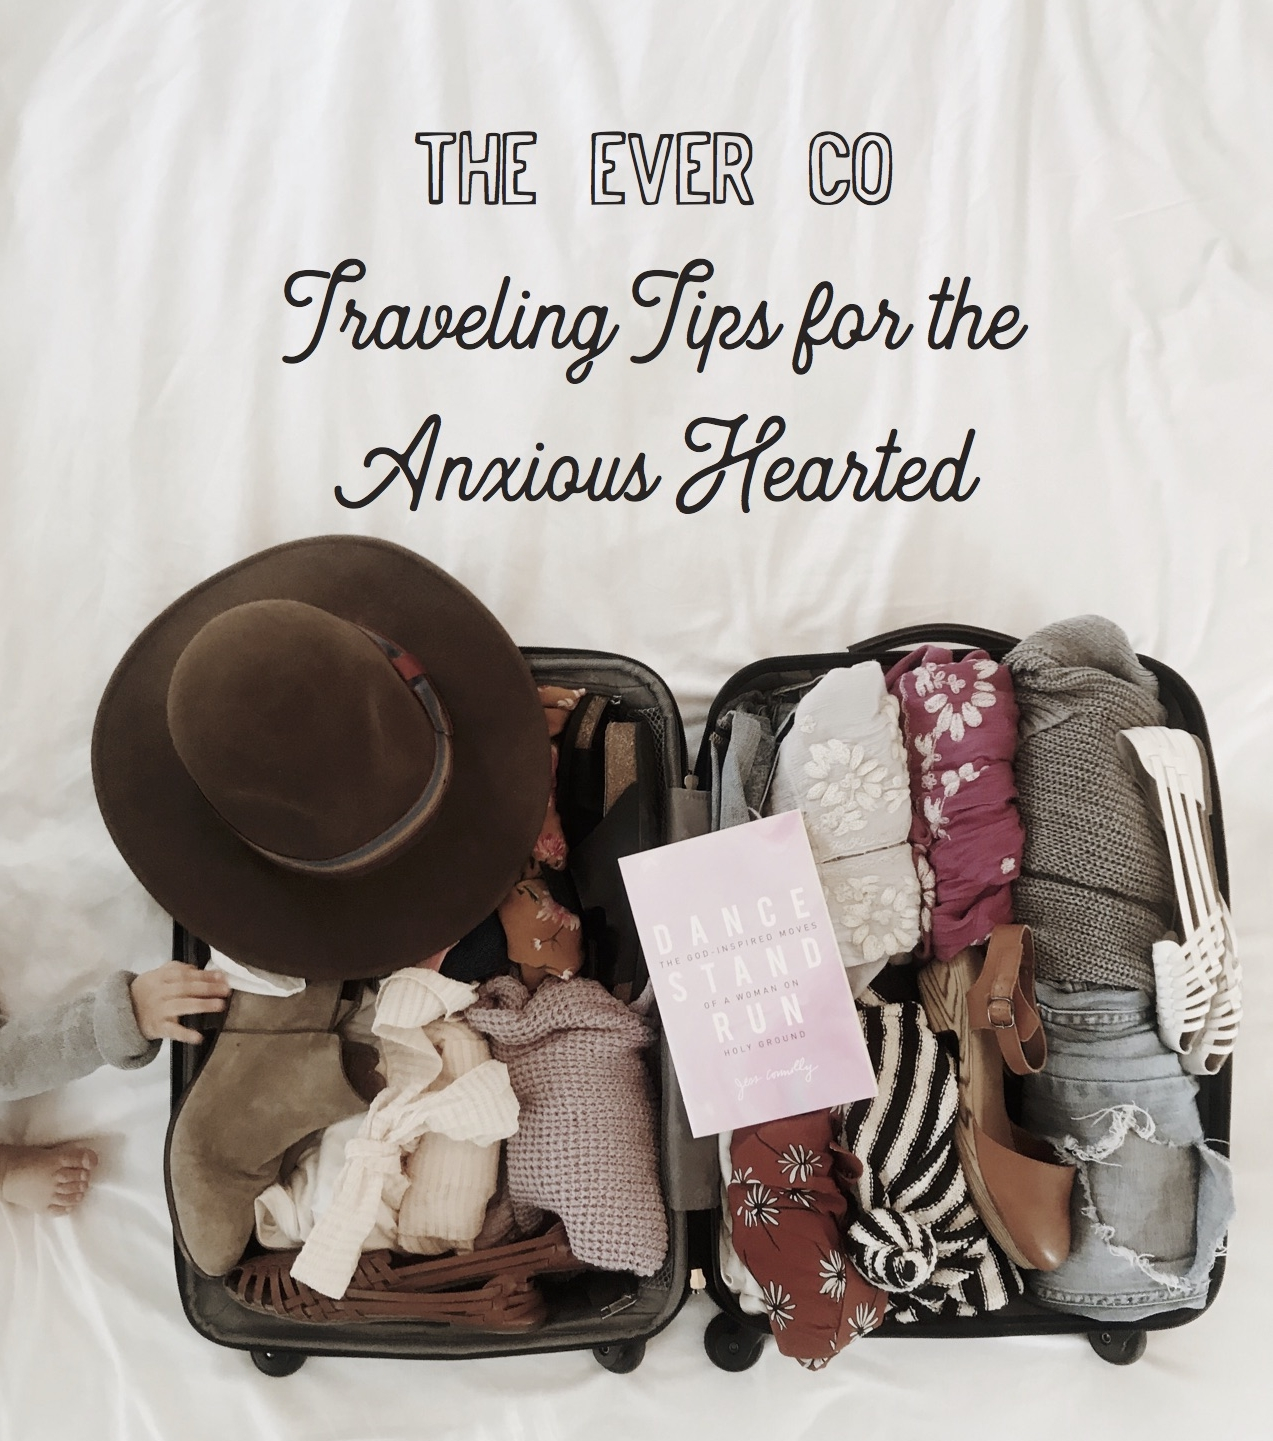 traveling tips for the anxious hearted with the ever co